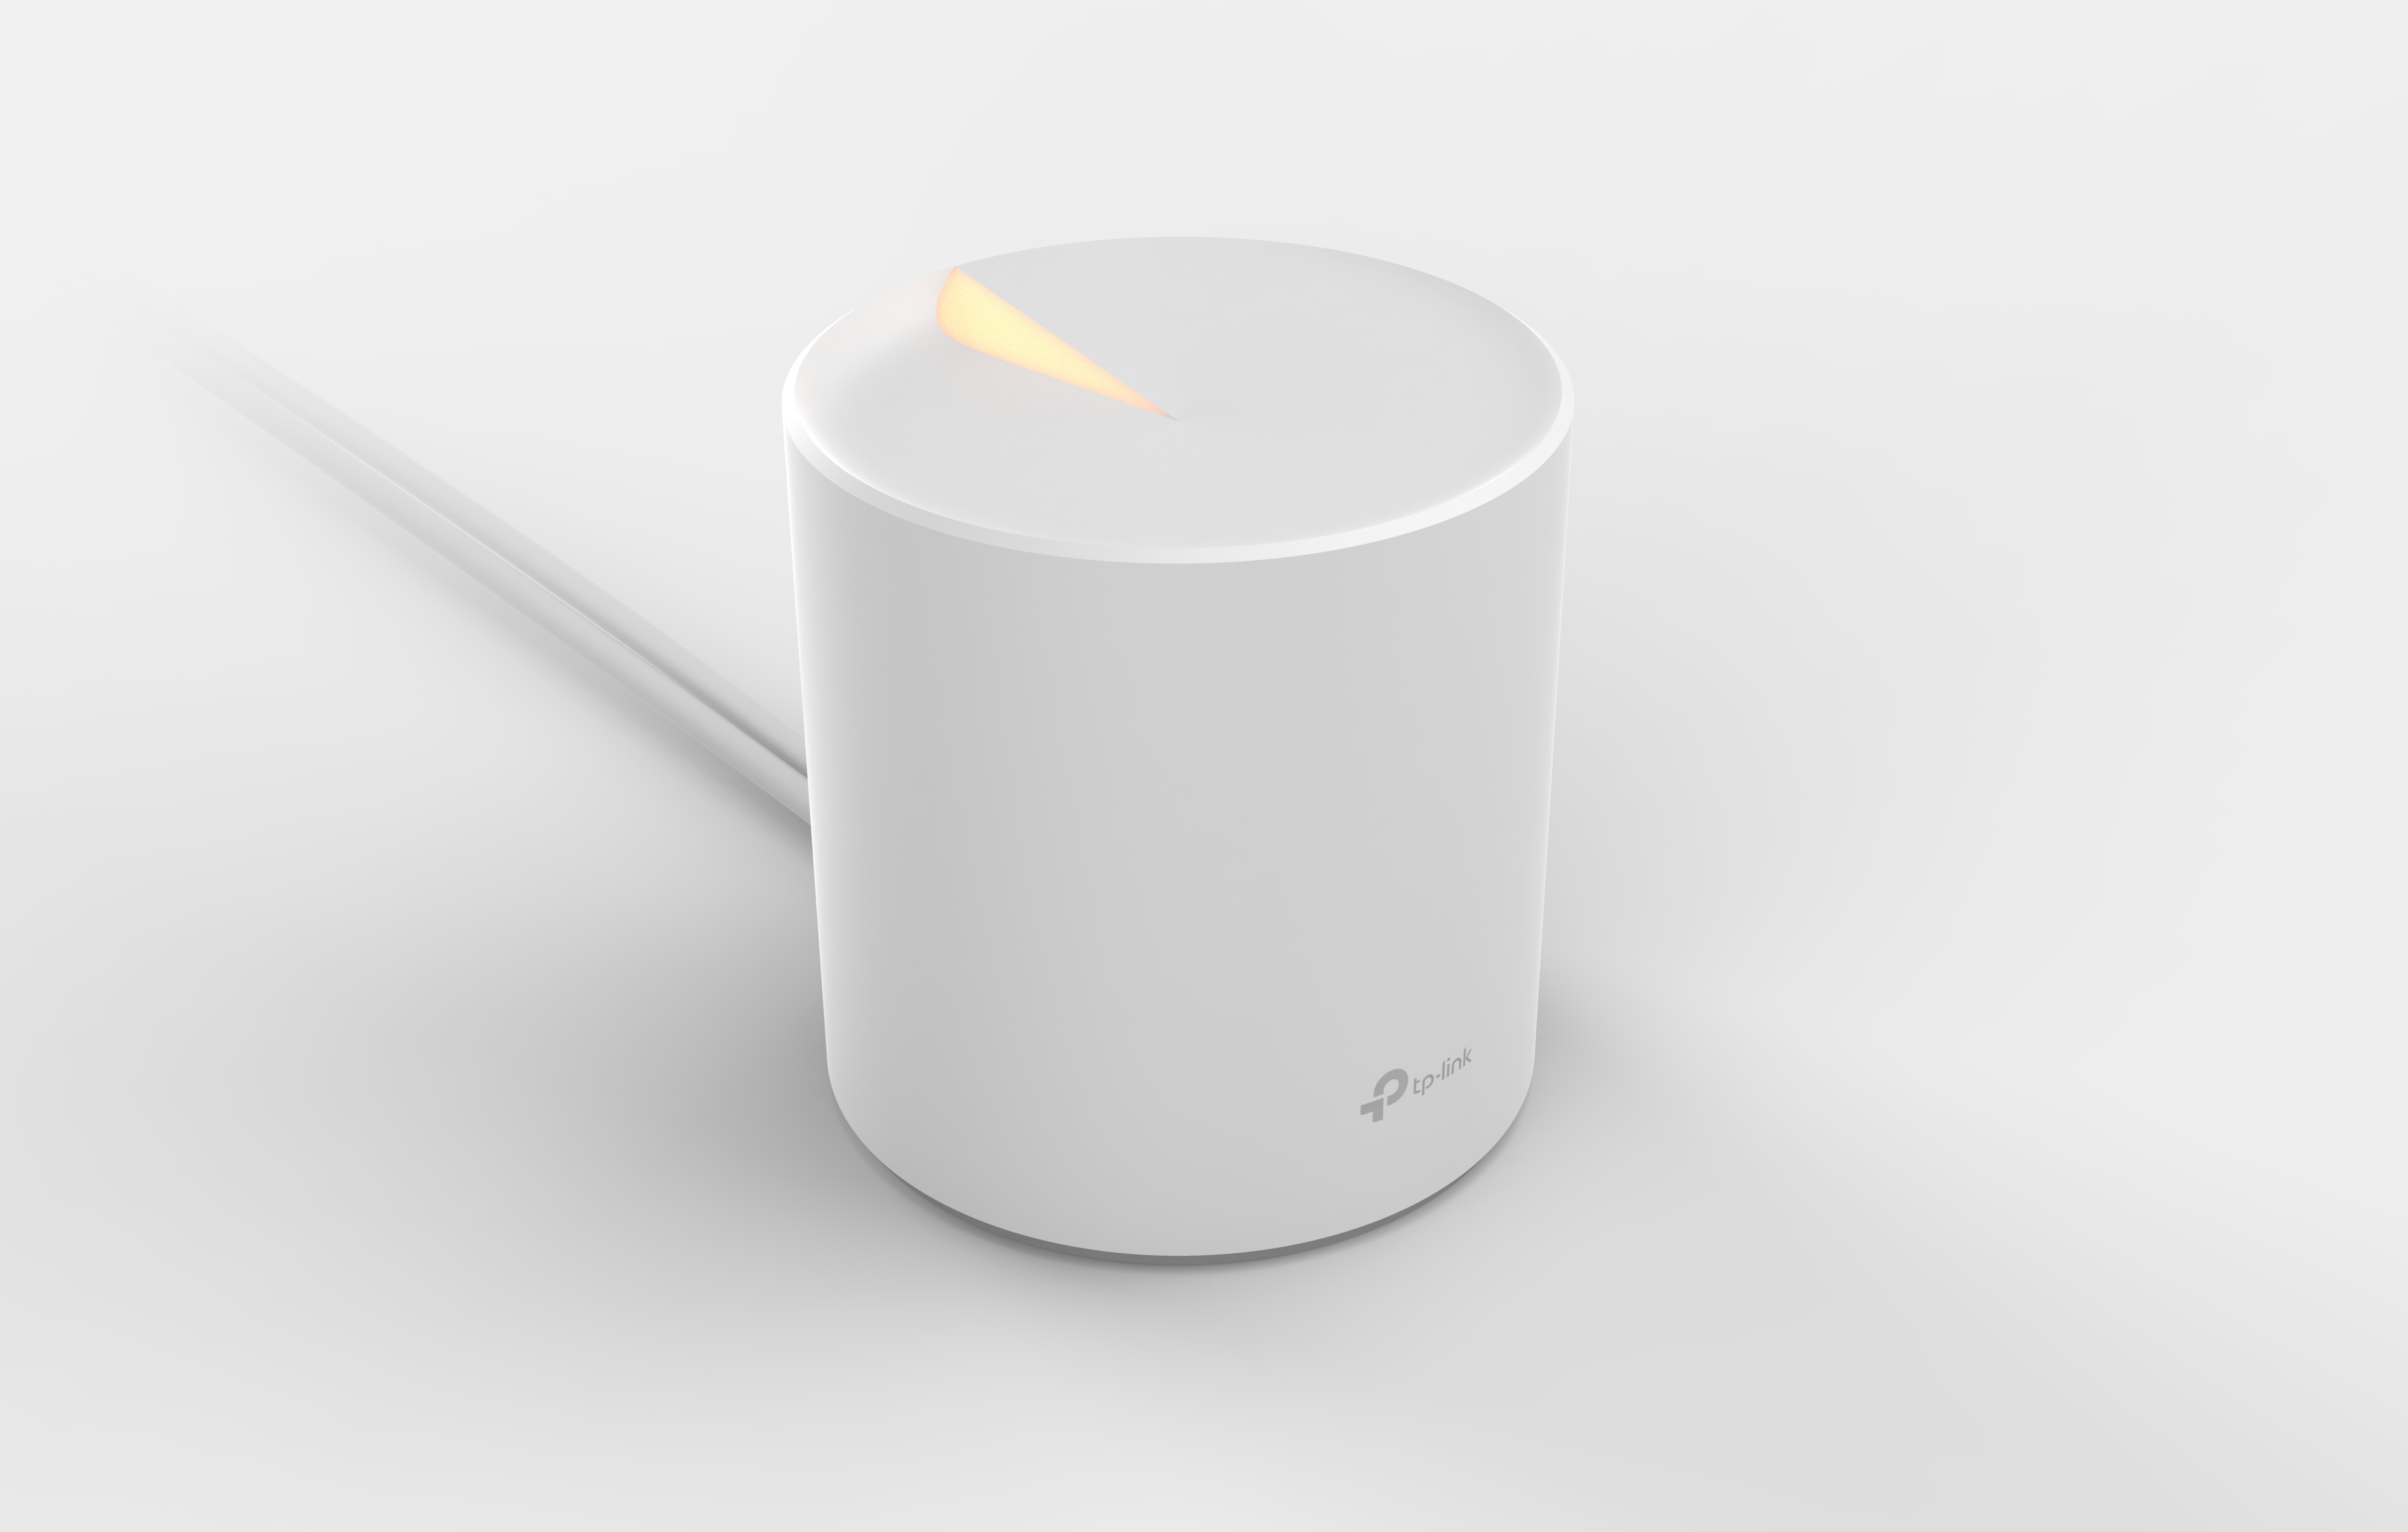 TP-Link Deco X10 Mesh Wi-Fi System